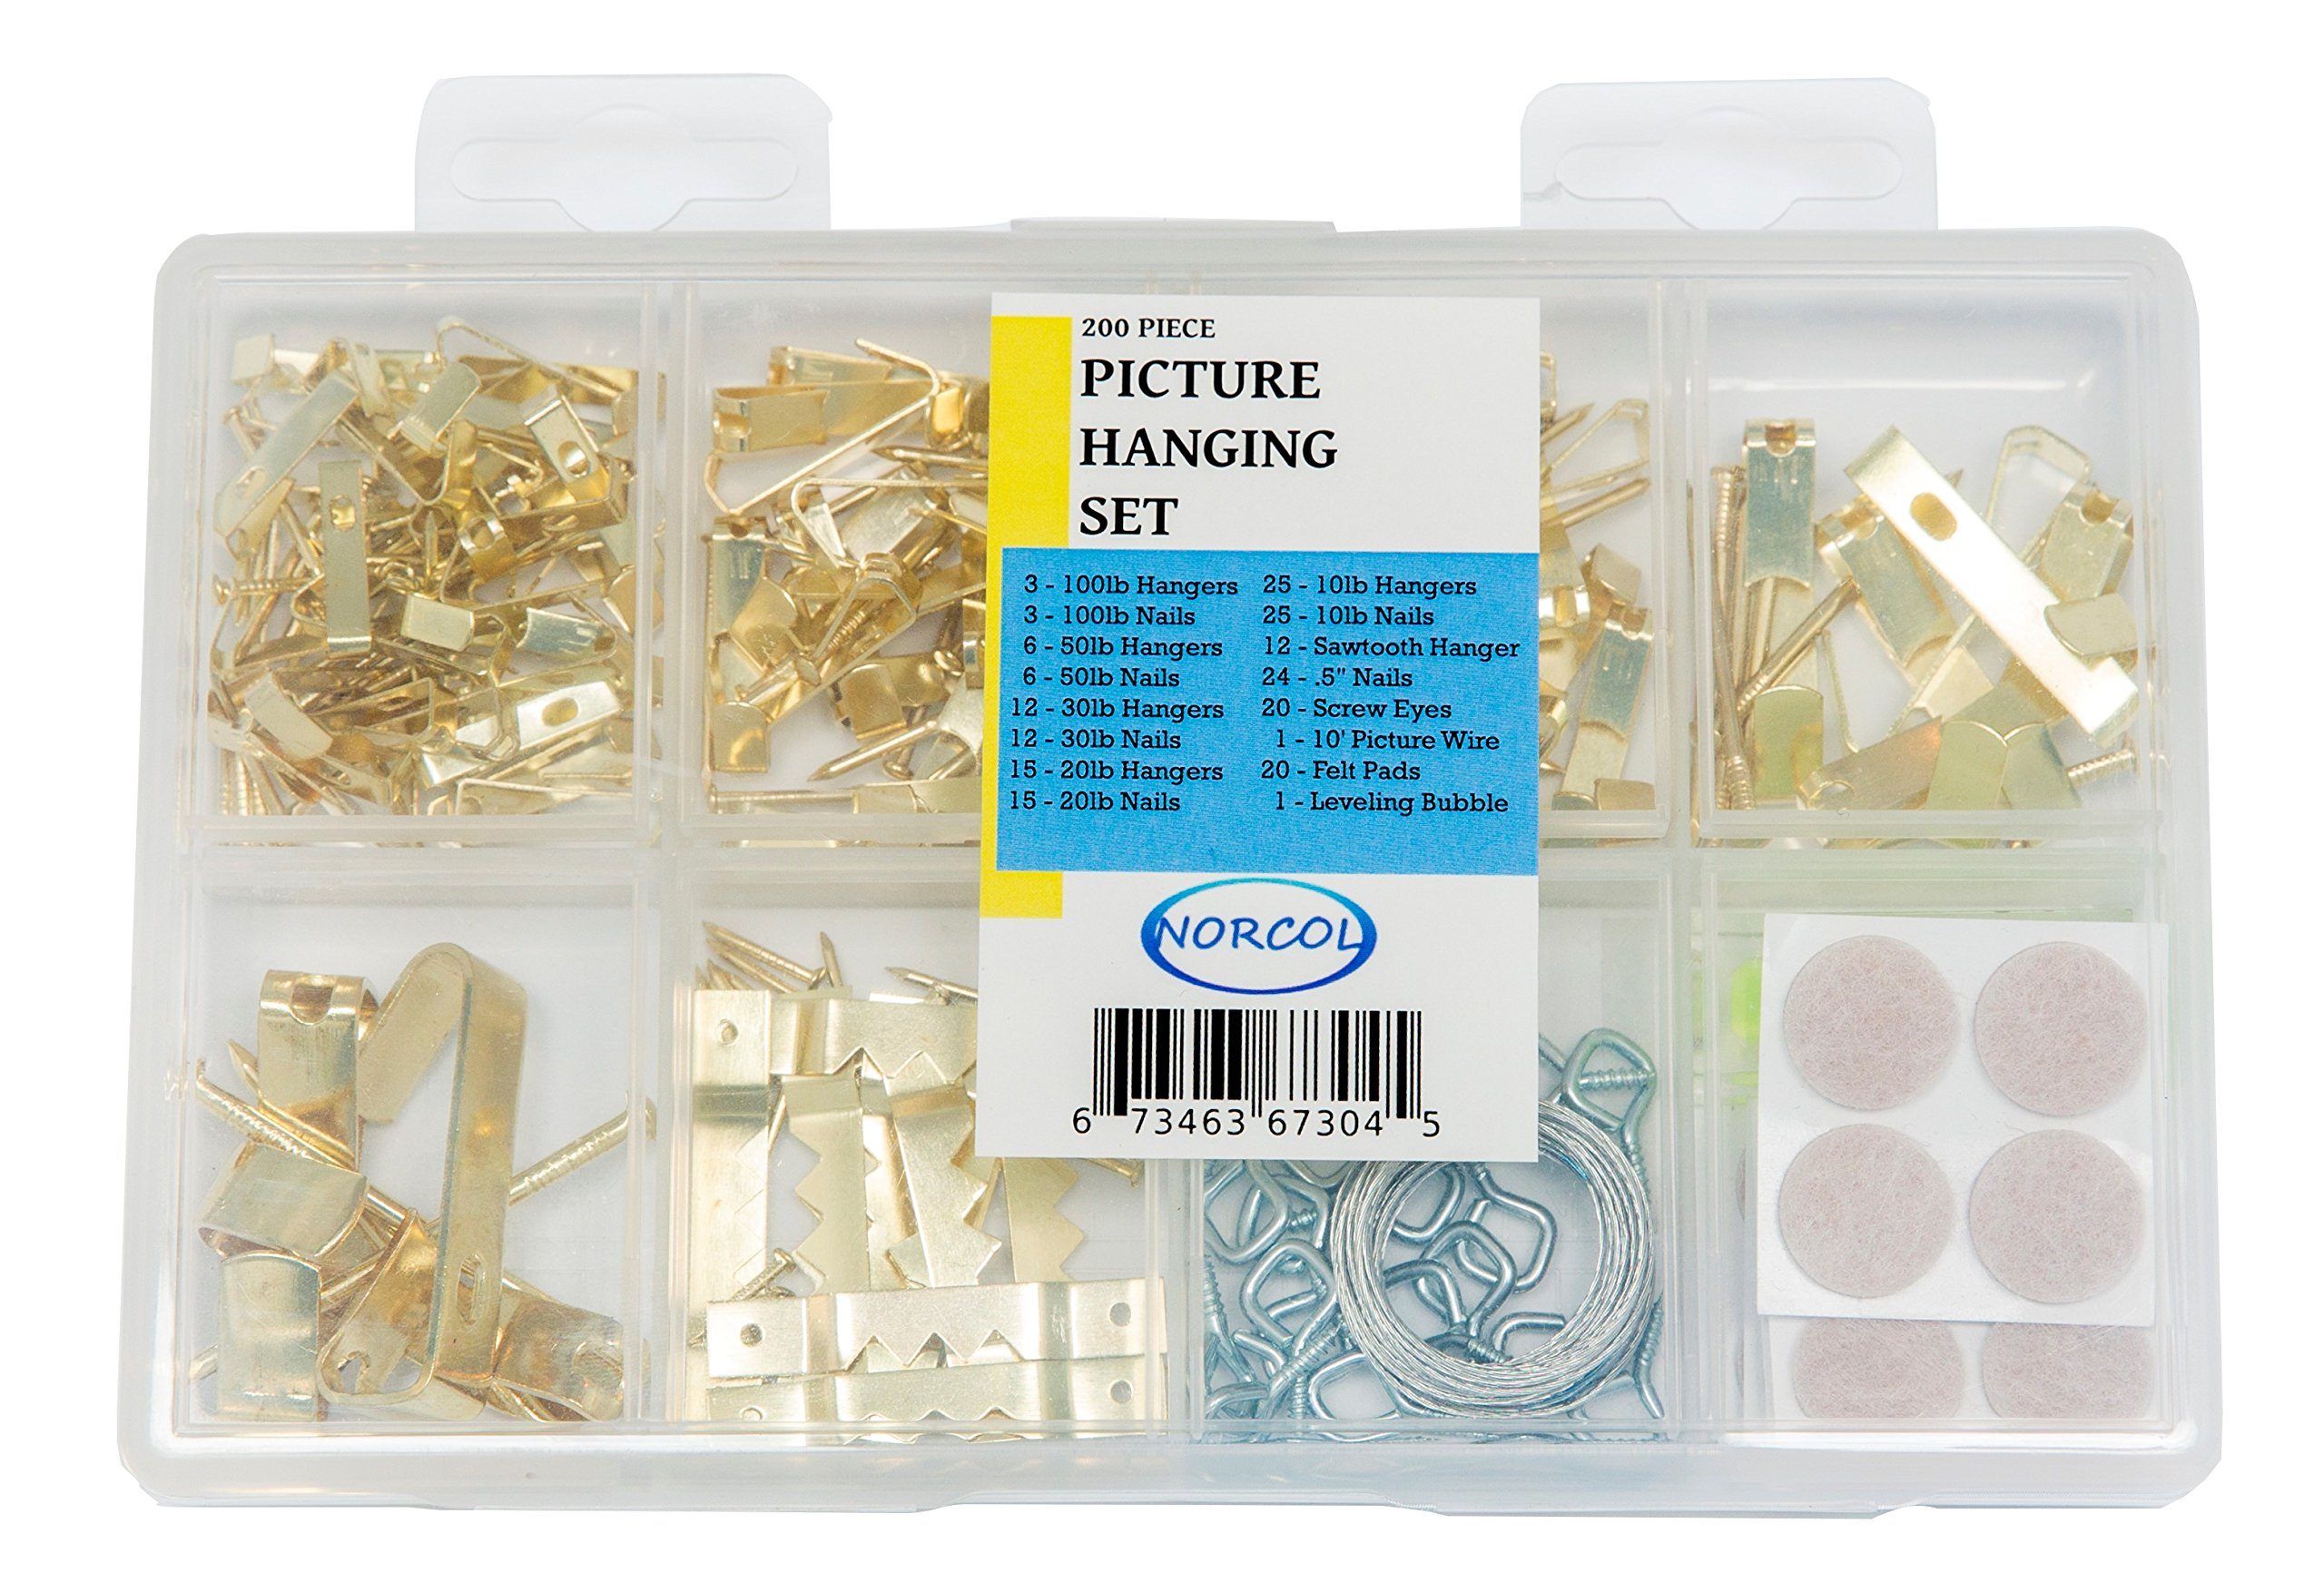 Picture Hanging Set - 200 Piece Assorted Kit with Hooks, Nails, Sawtooth Hangers, Wire, Bubble Level and Protective Felt Pads